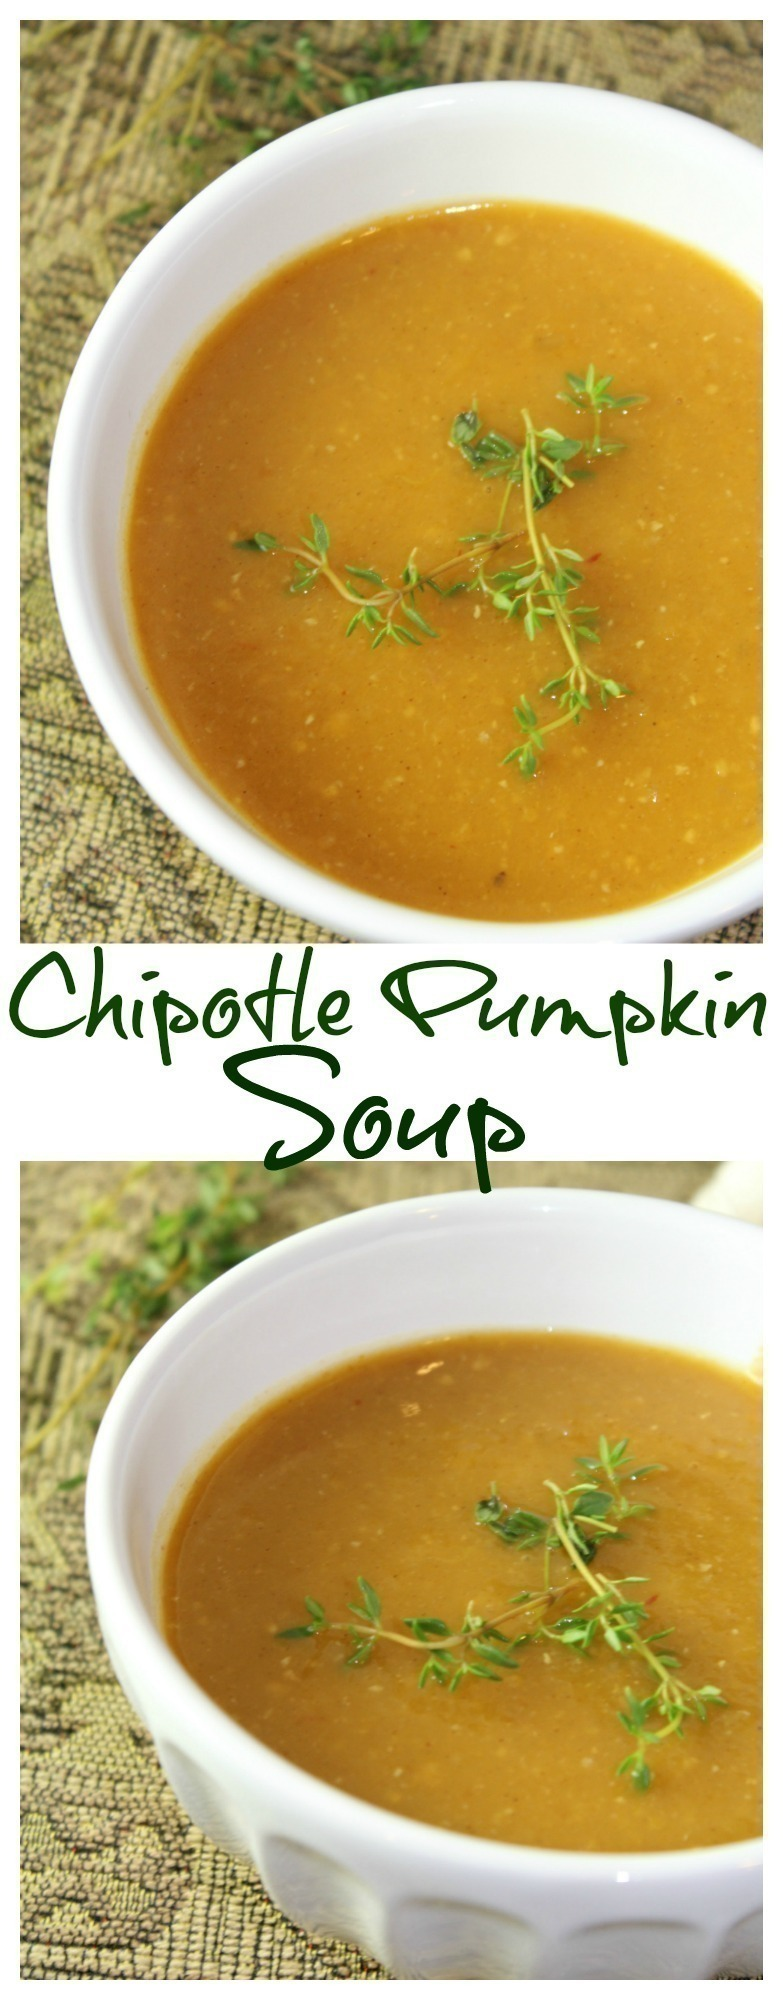 A delicious blend of pumpkin, apples and potatoes taken up a notch with the spicy addition of chipotle peppers.